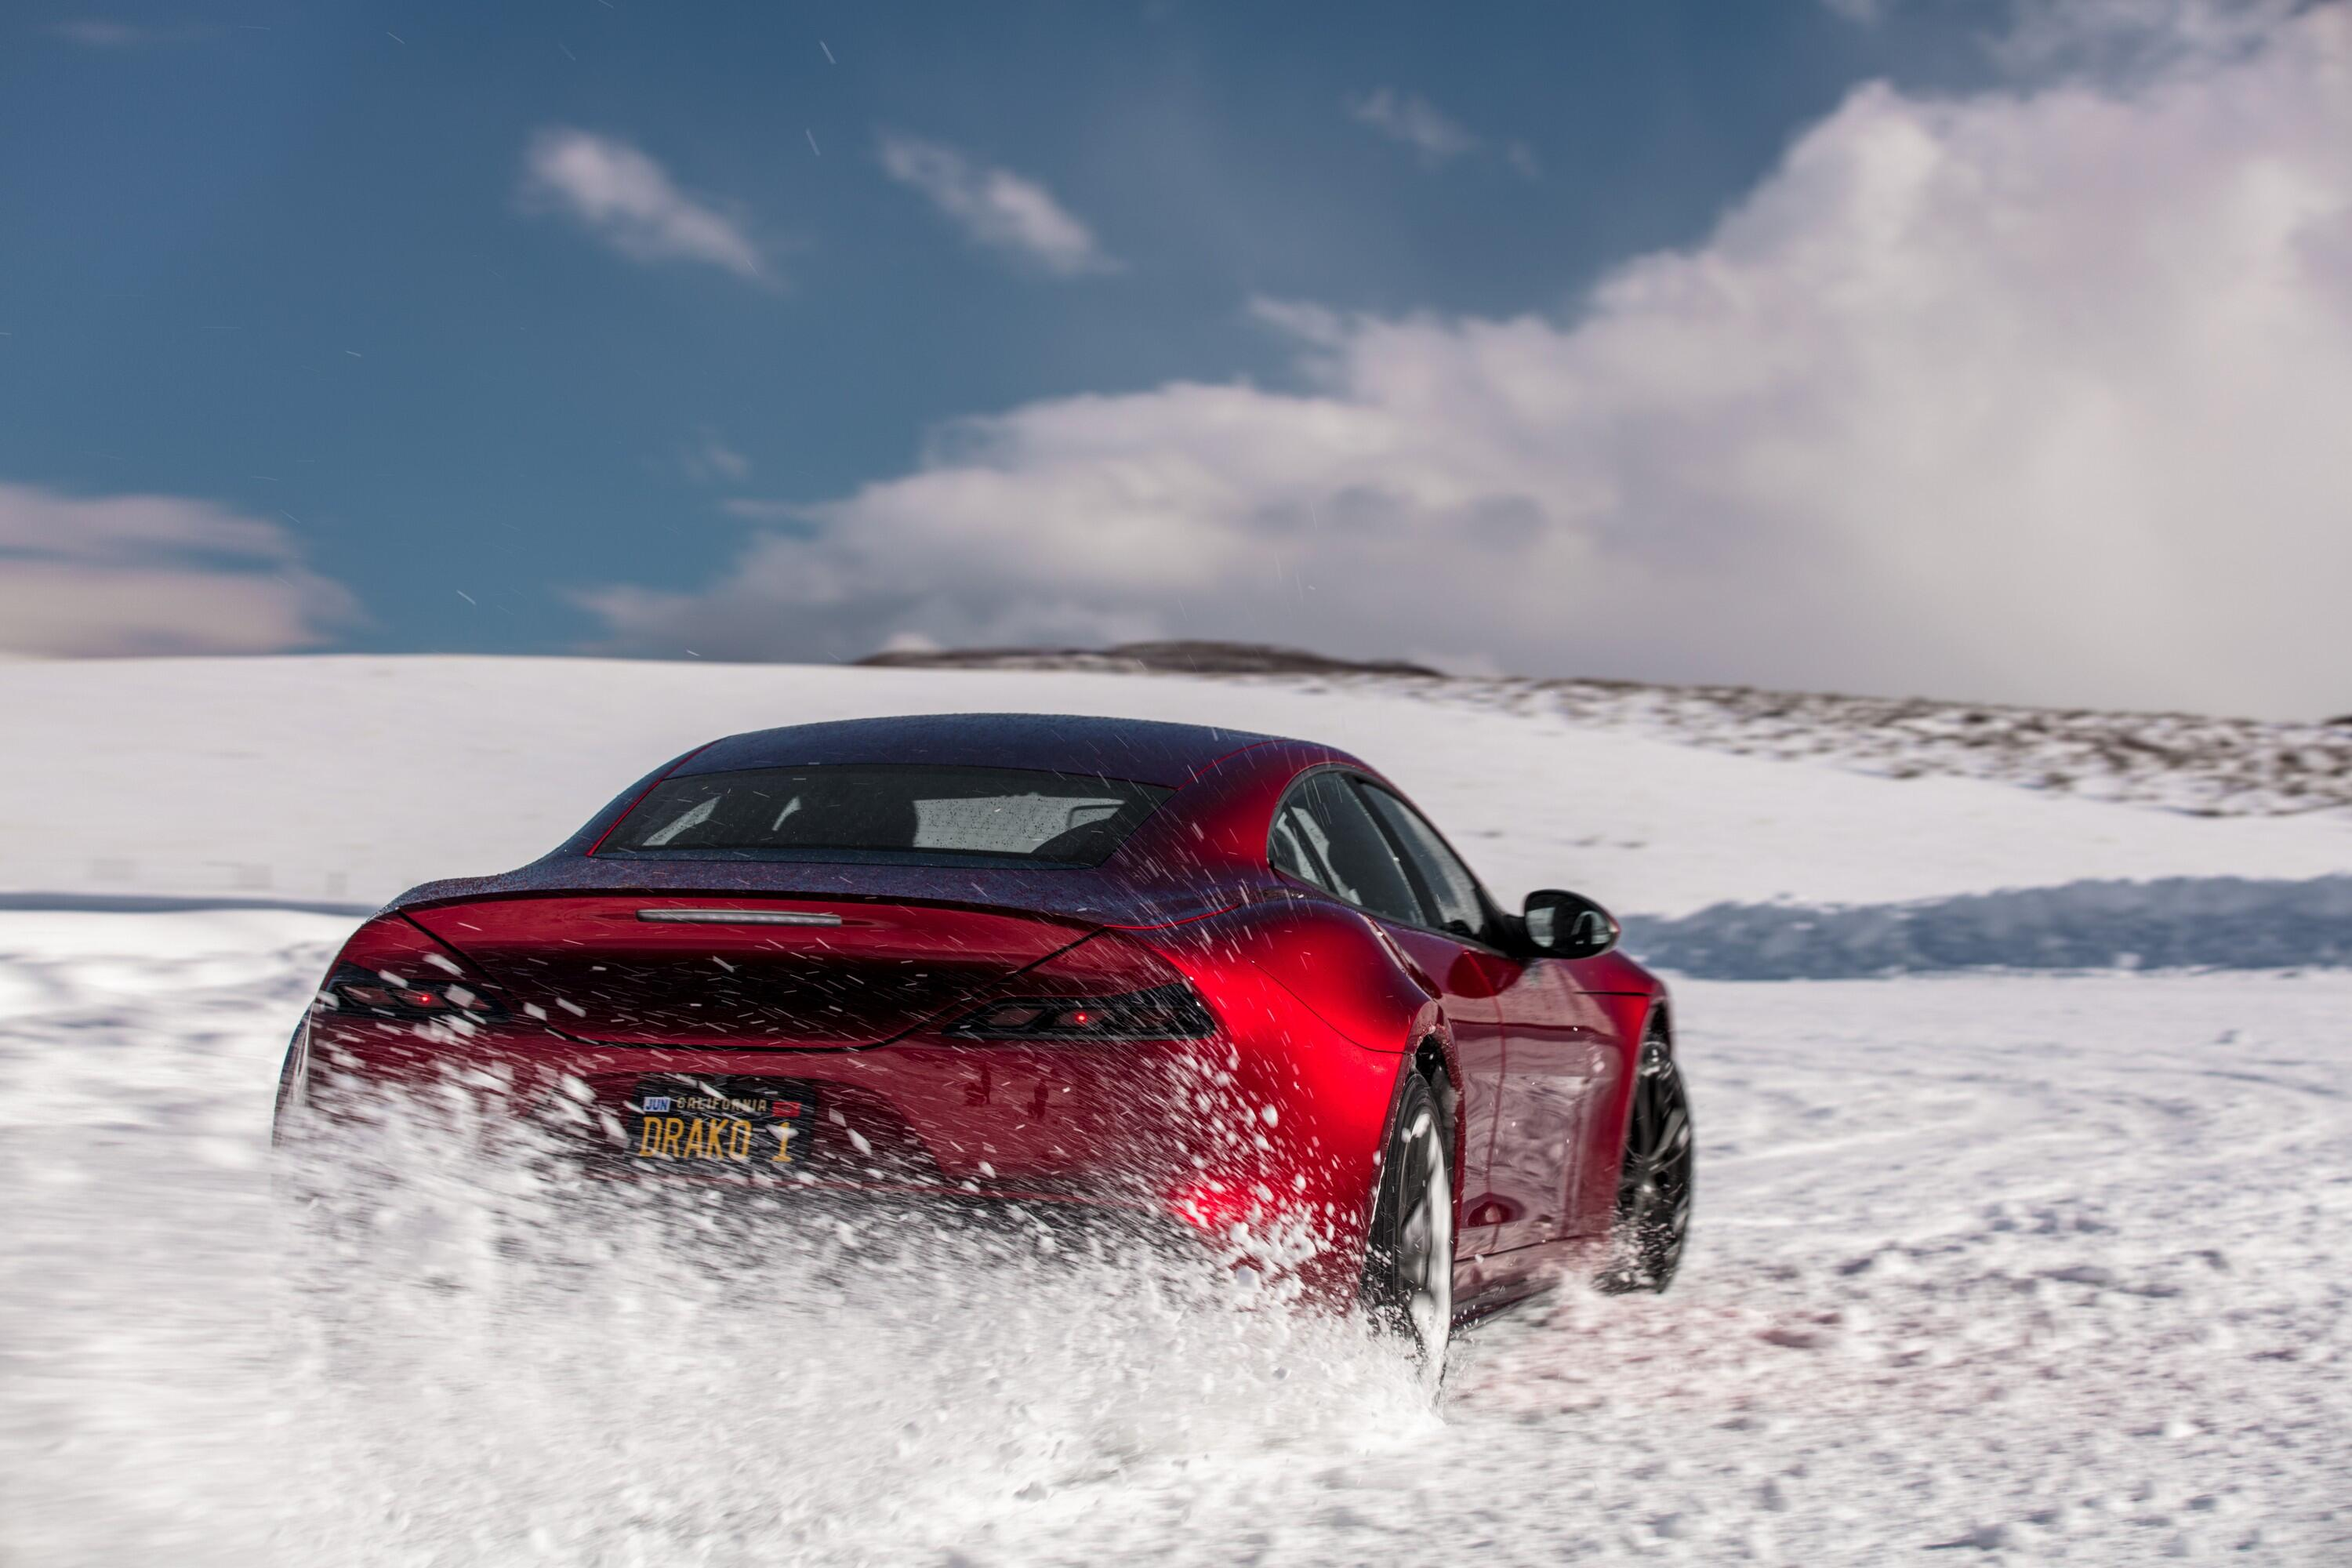 drako-motors-gte-winter-testing-7